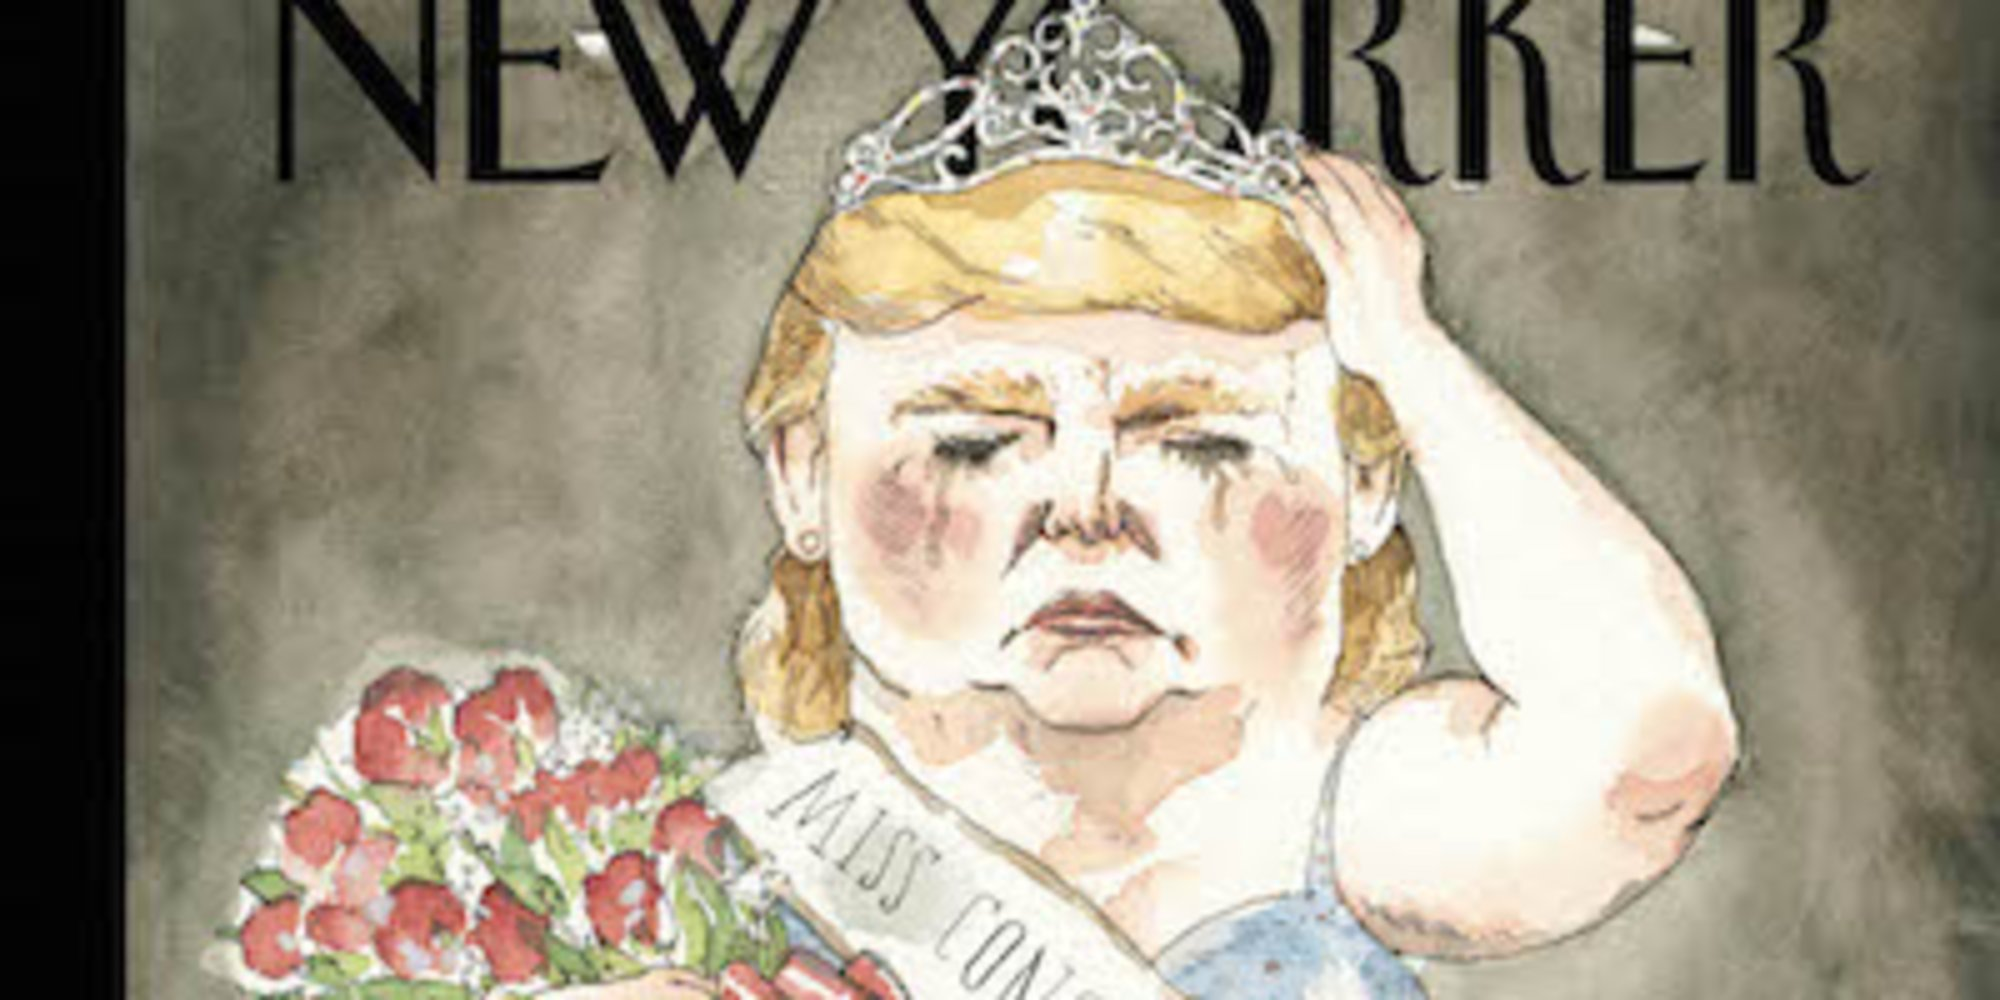 RT @HuffingtonPost: This Donald Trump New Yorker cover is a thing of beauty https://t.co/8ECAFOHbzD https://t.co/jyNekarInK